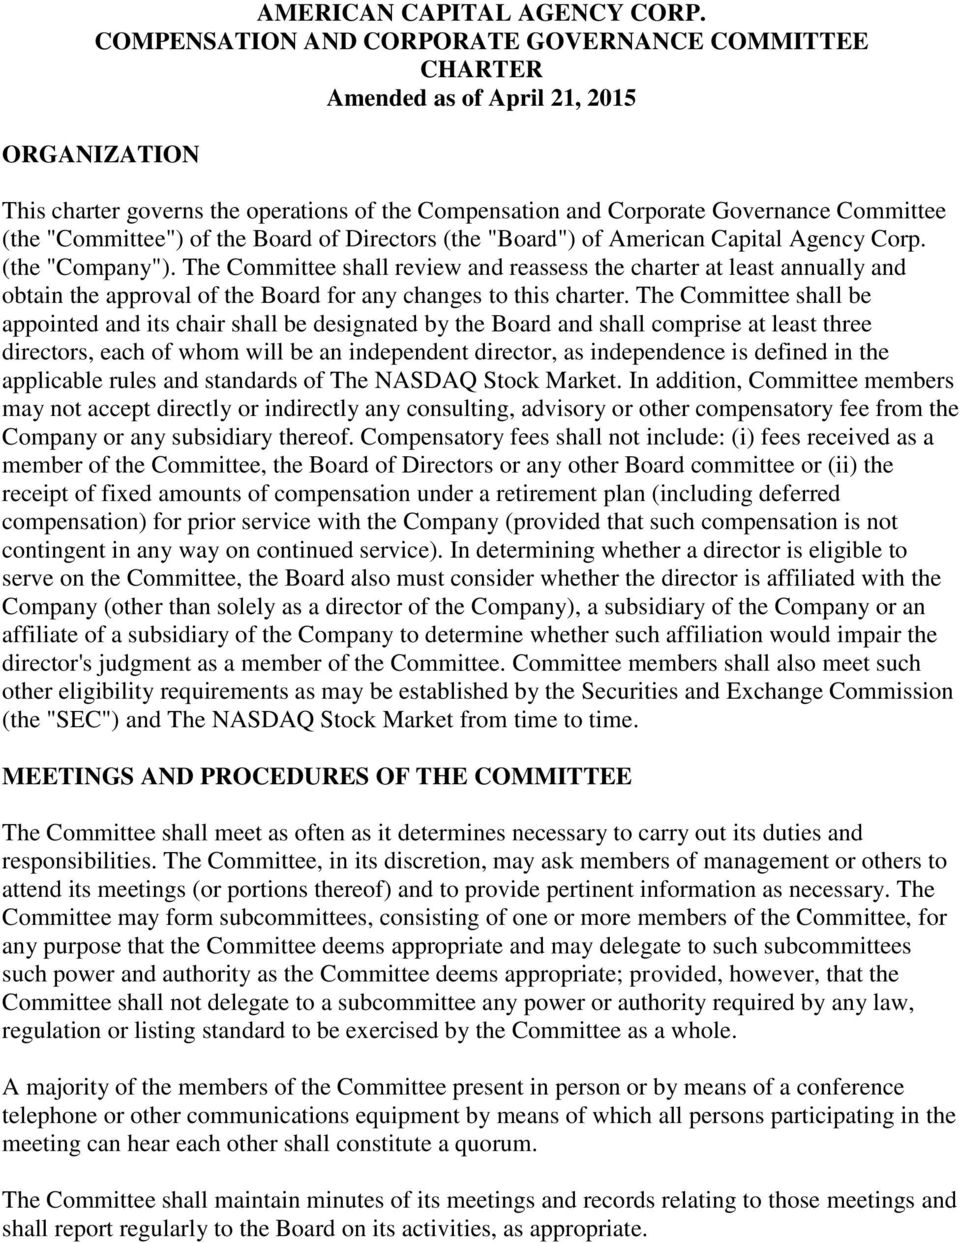 """Committee"") of the Board of Directors (the ""Board"") of American Capital Agency Corp. (the ""Company"")."